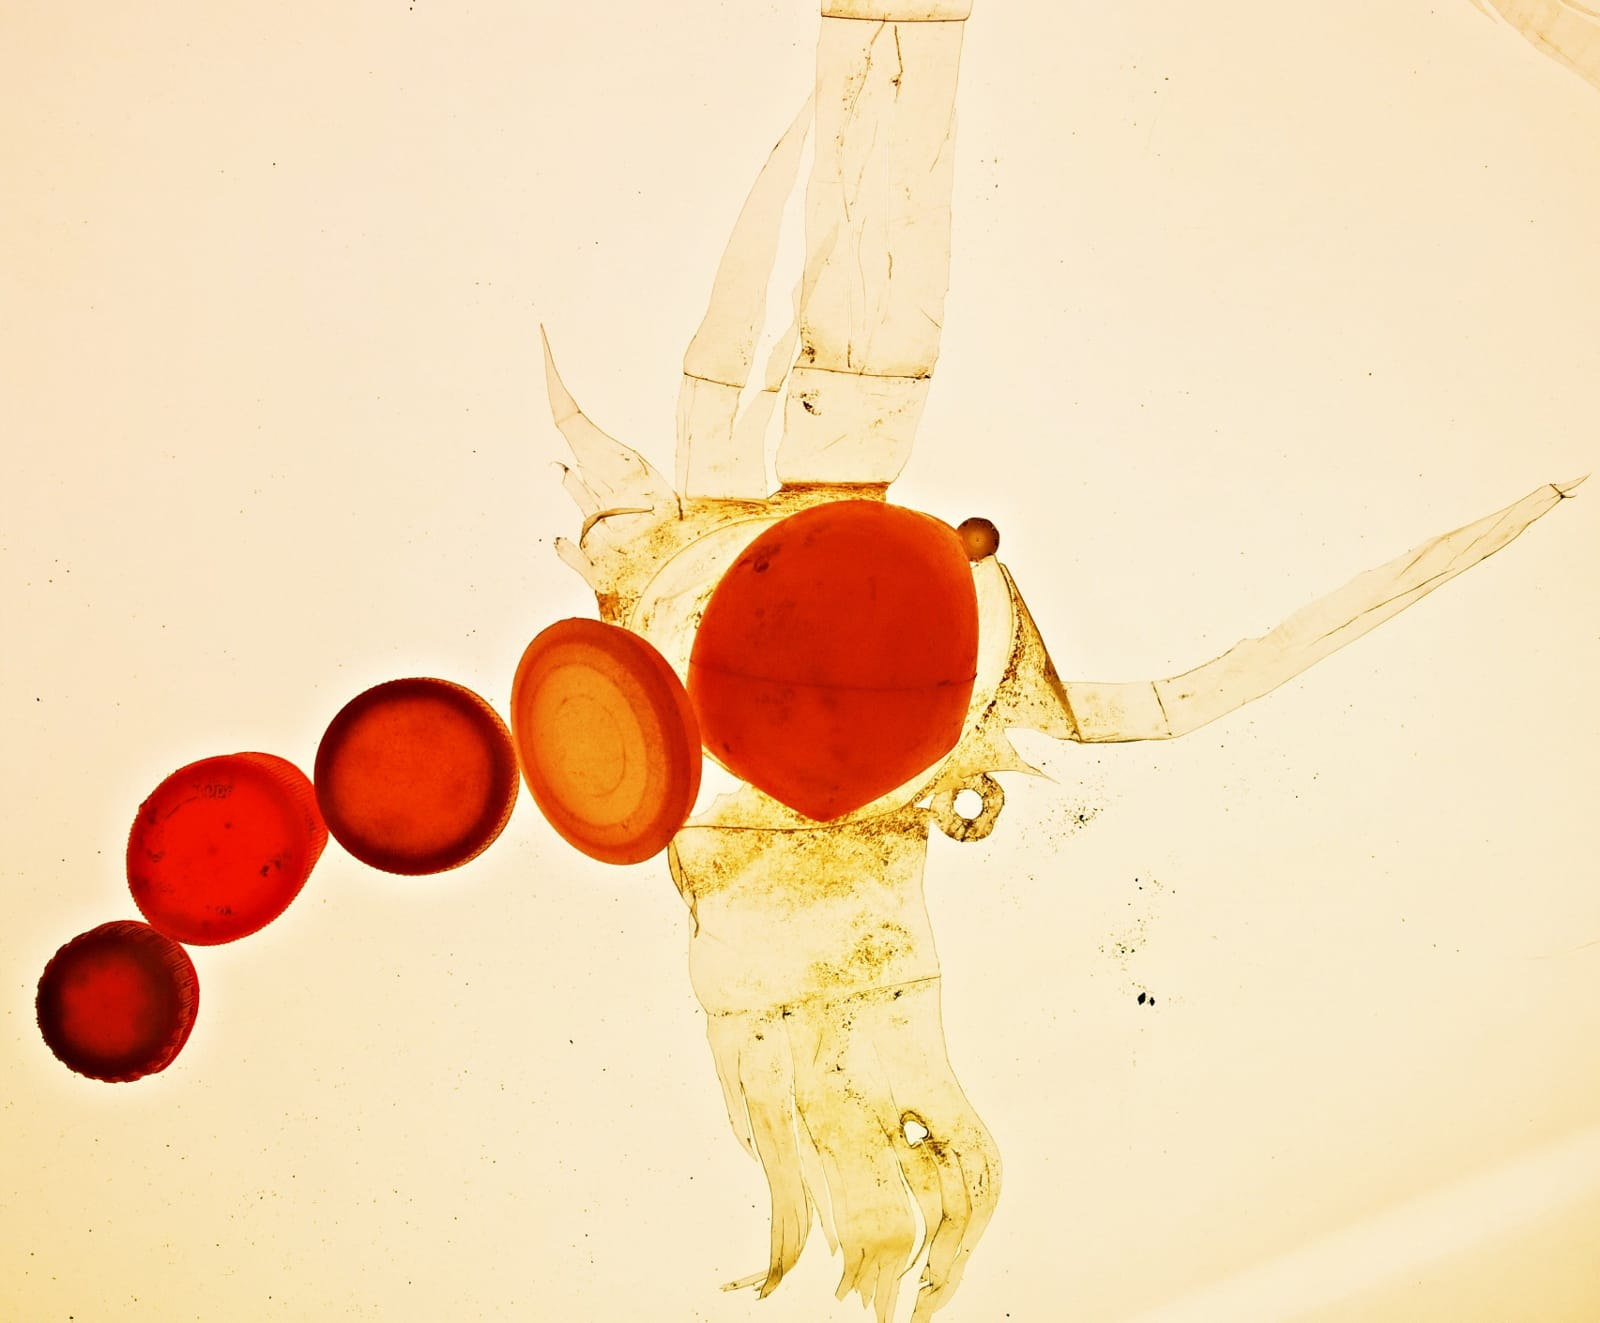 Come and make a planktonic creature like this one, using a lightbox and plastic debris from the banks of The Thames………